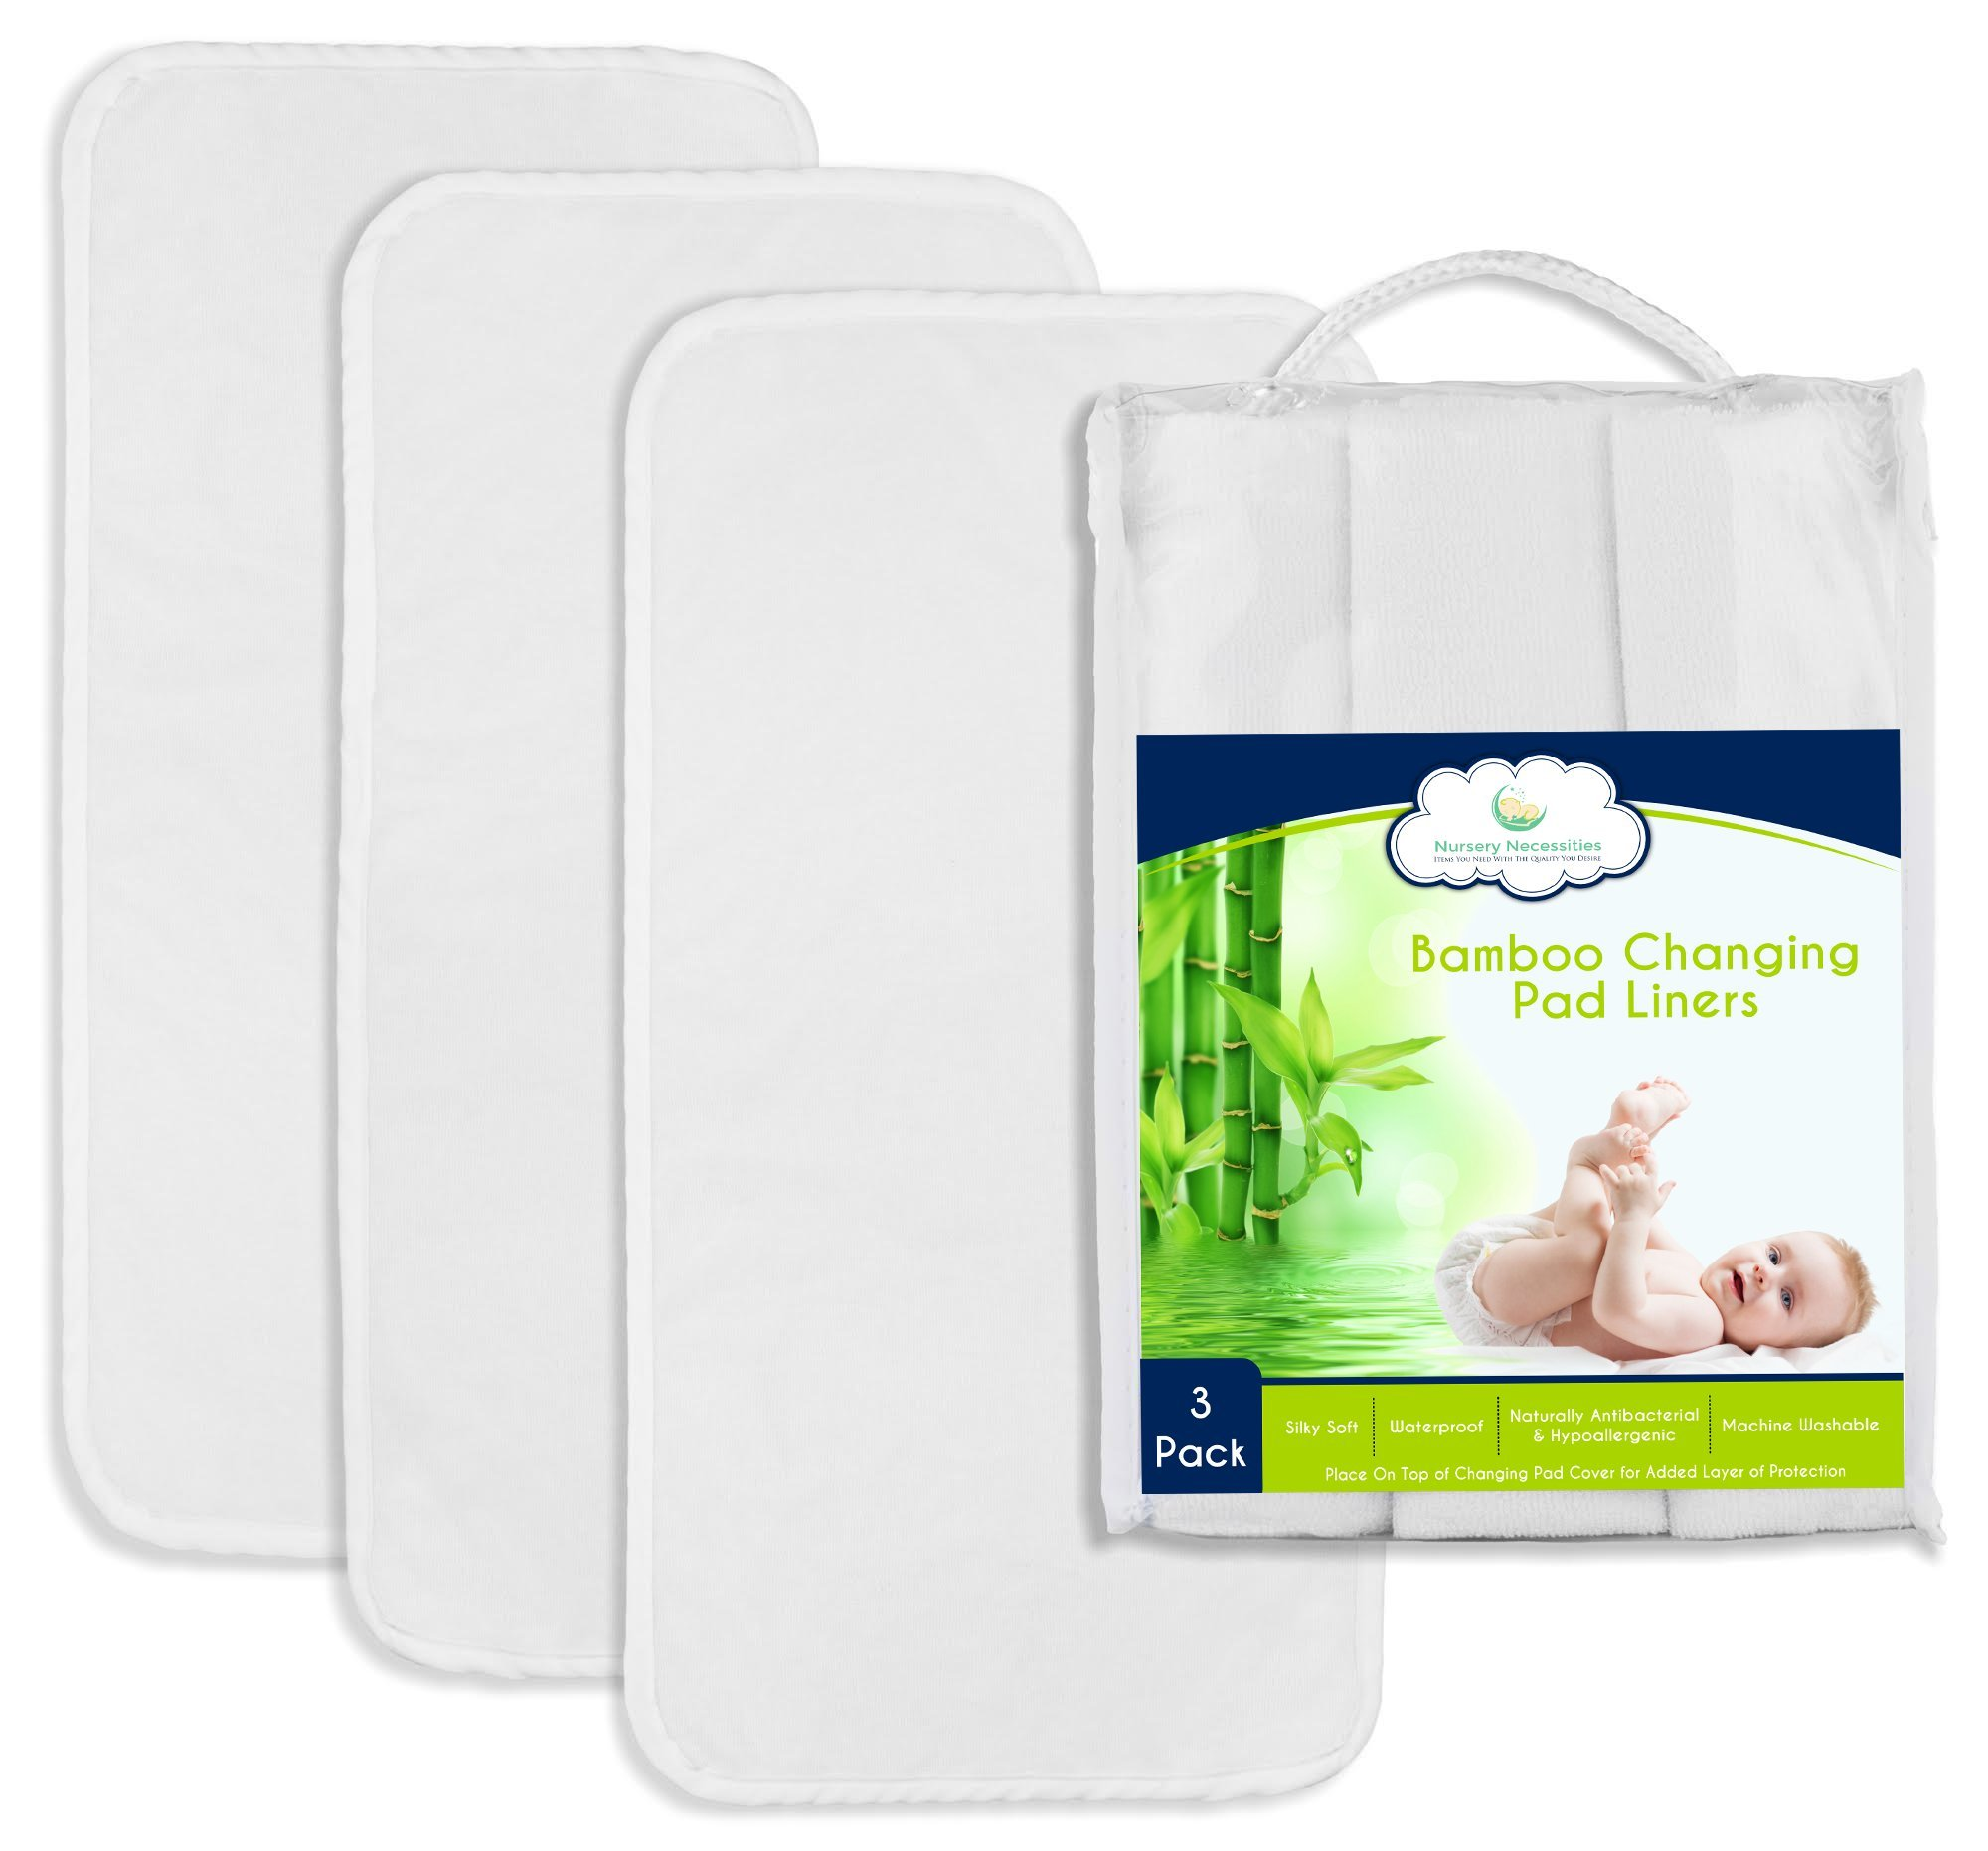 "Best NON-SLIDE Bamboo Changing Pad Liners - 3-Pack, Thicker & Highest Quality Fabric - 26.5"" x 13"" – Waterproof, Antibacterial, Hypoallergenic, Machine Wash & Dry – Nursery Necessities"